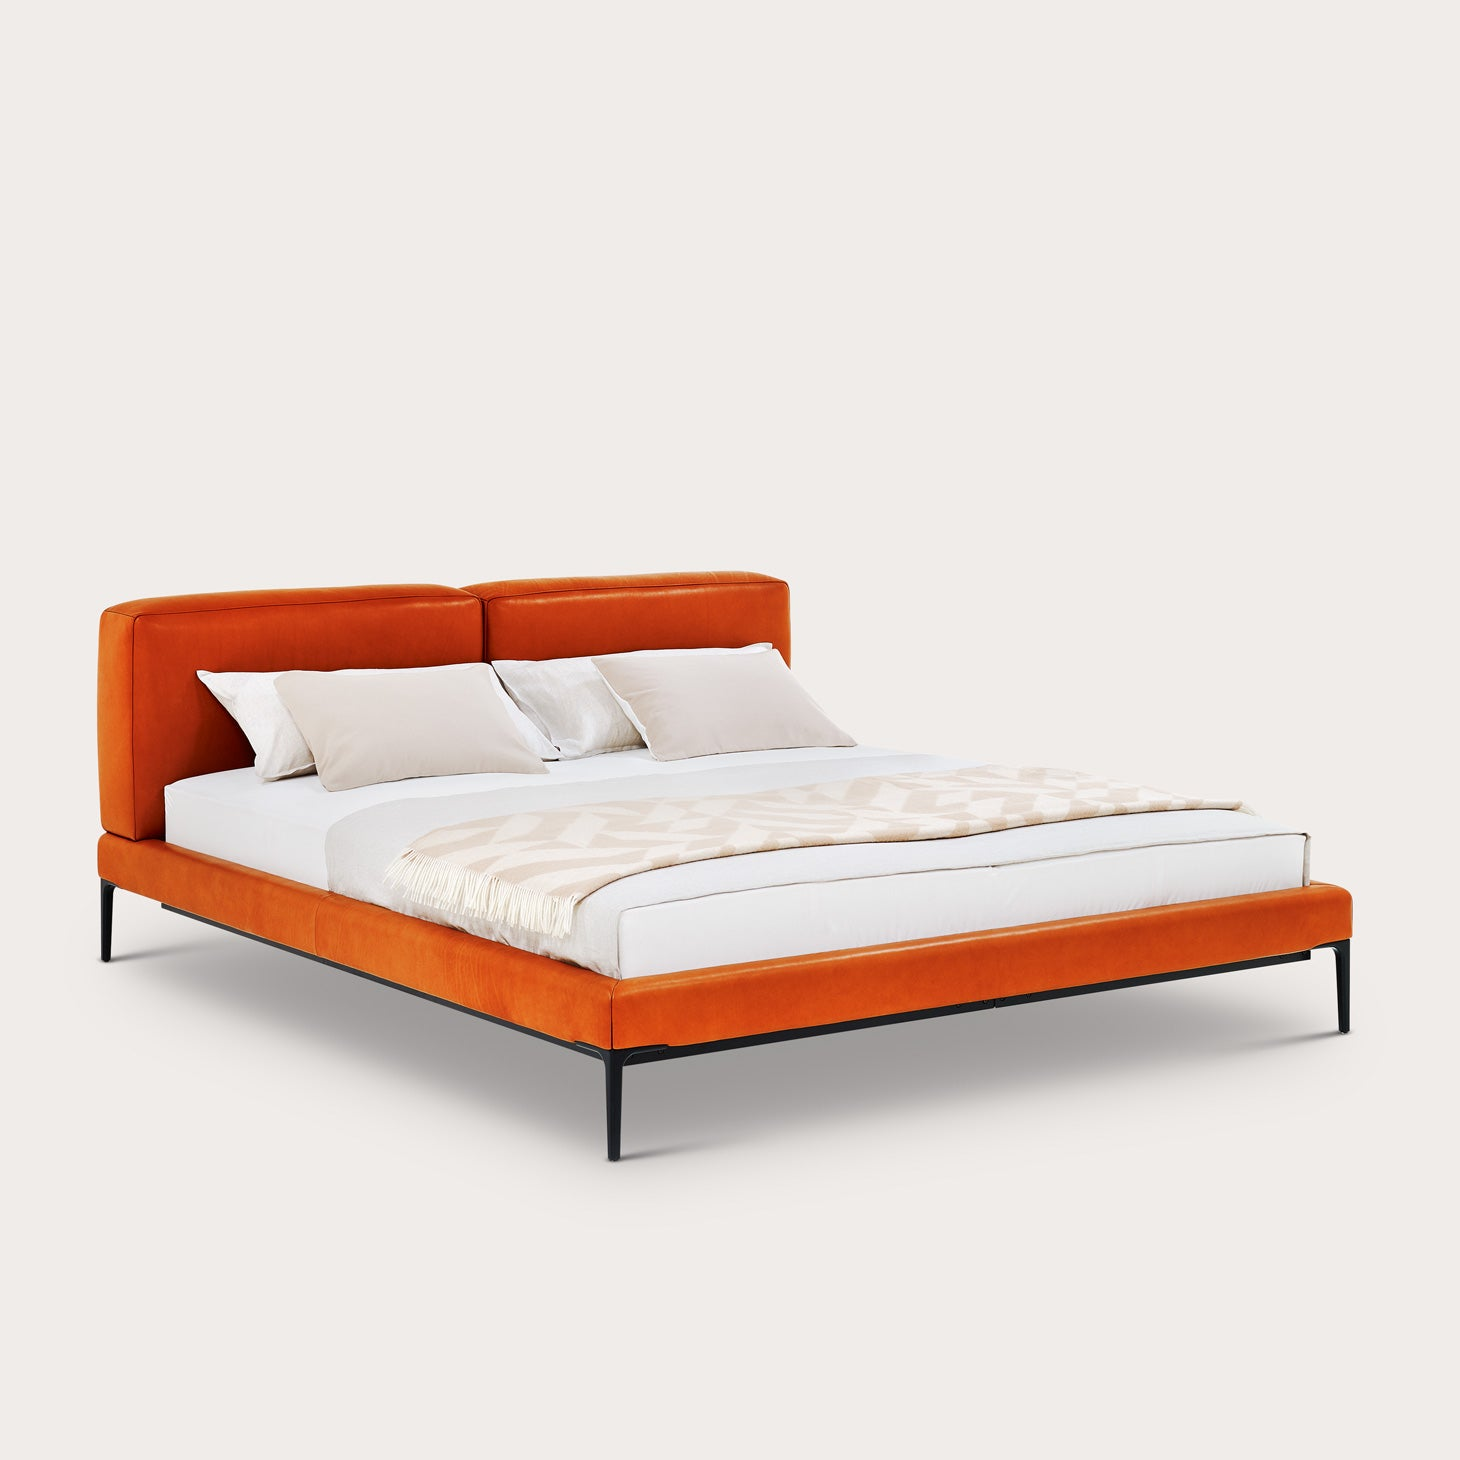 Joyce Cushion Bed Beds Nada Nasrallah & Christian Horner Designer Furniture Sku: 758-110-10058